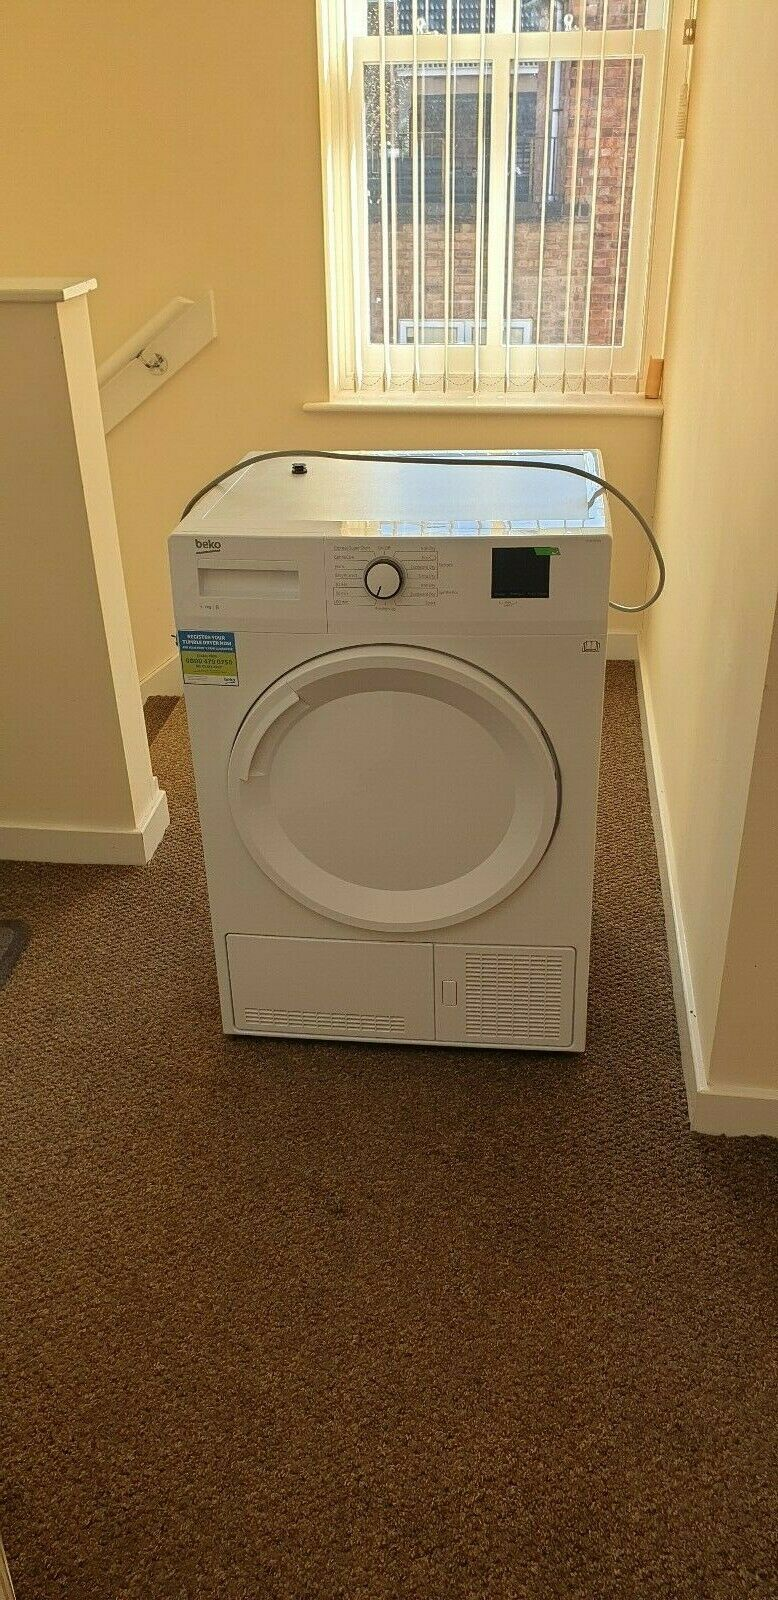 BEKO DTBC7001W 7 kg Condenser Tumble Dryer - White - Manufa. Warranty to 27/0720